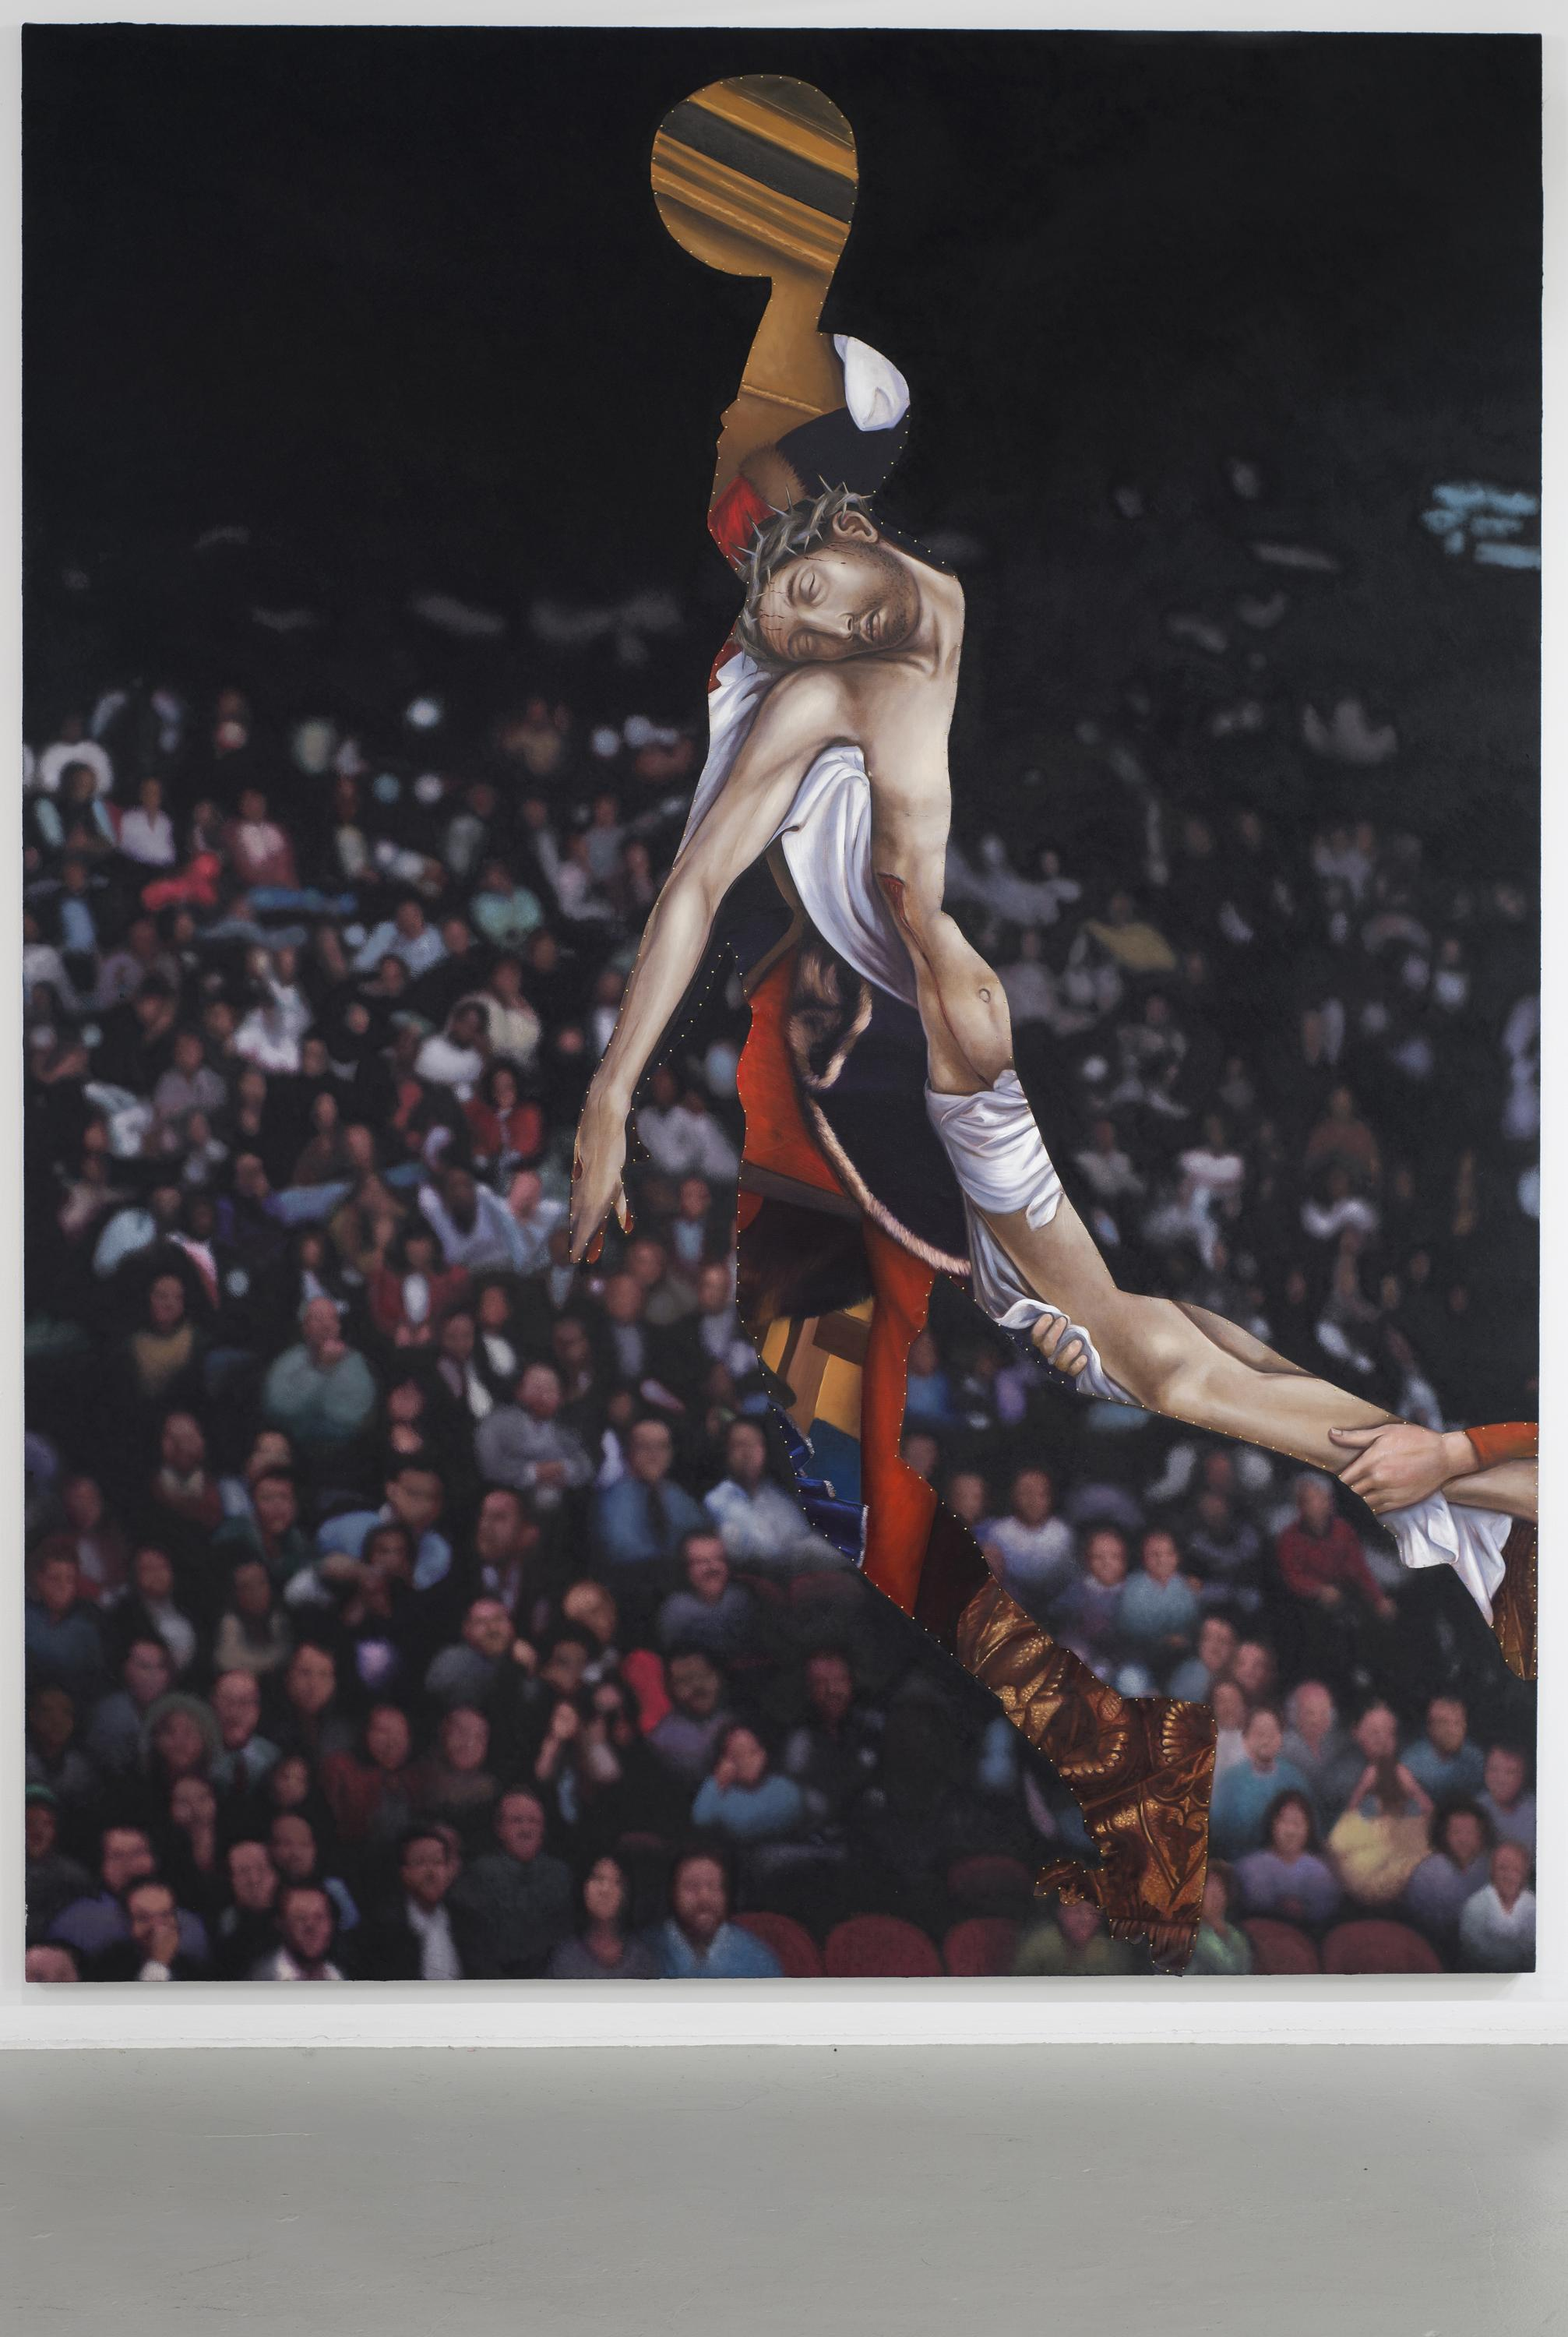 A basketball player leaping toward the hoop as if to dunk looks as if their body is collaged with an image of Jesus Christ wearing a crown of thorns. A large audience looks on.